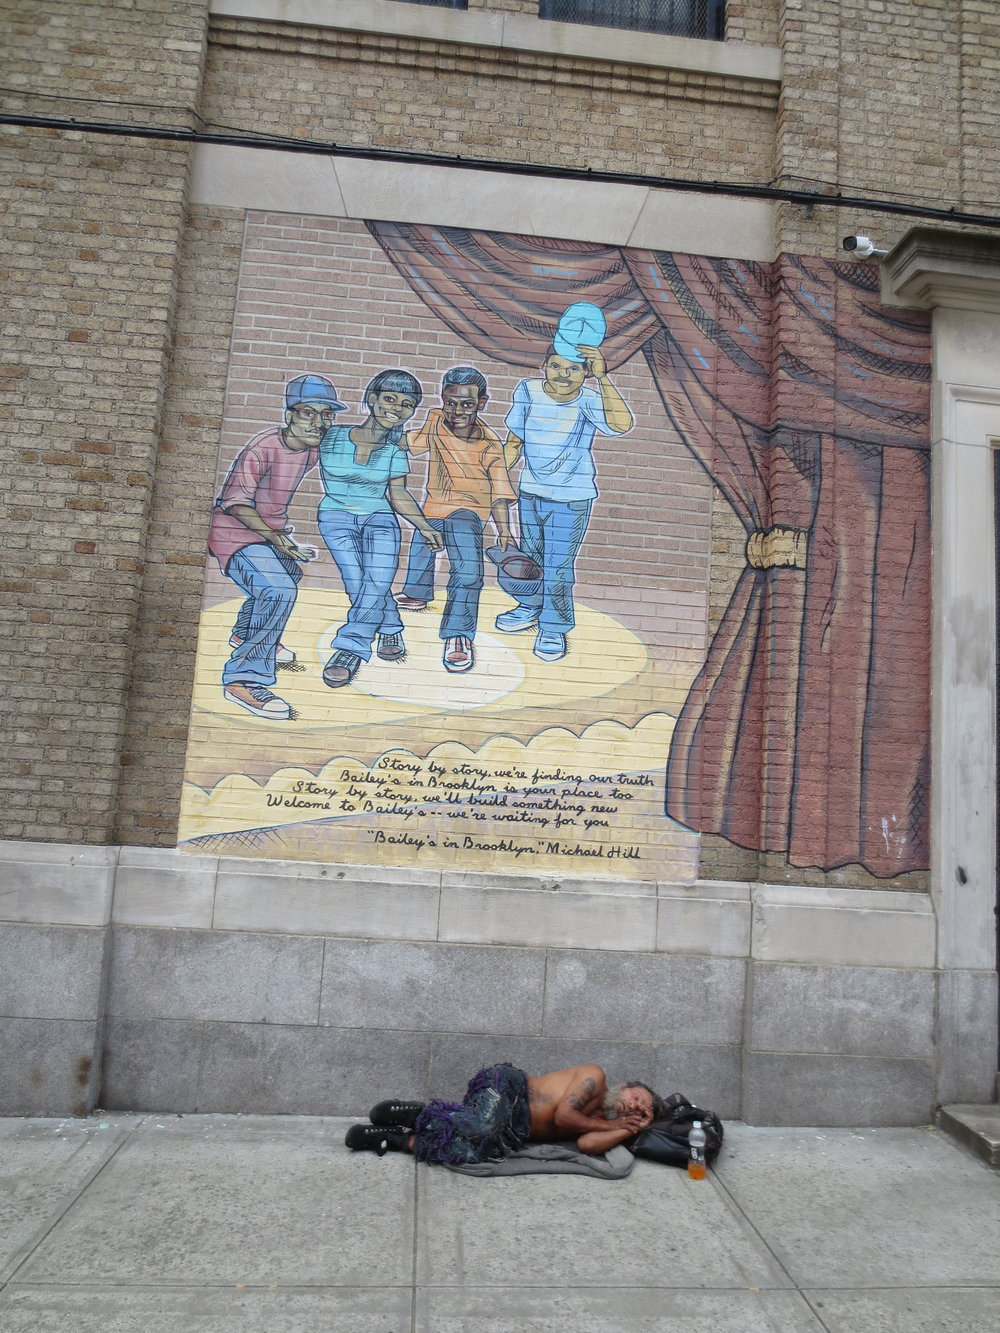 A celebration of Black achievement celebrating the stories of individuals improving themselves and the community. Alas not all stories are positive. This mural is on Herkimer Place just off of Nostrand.